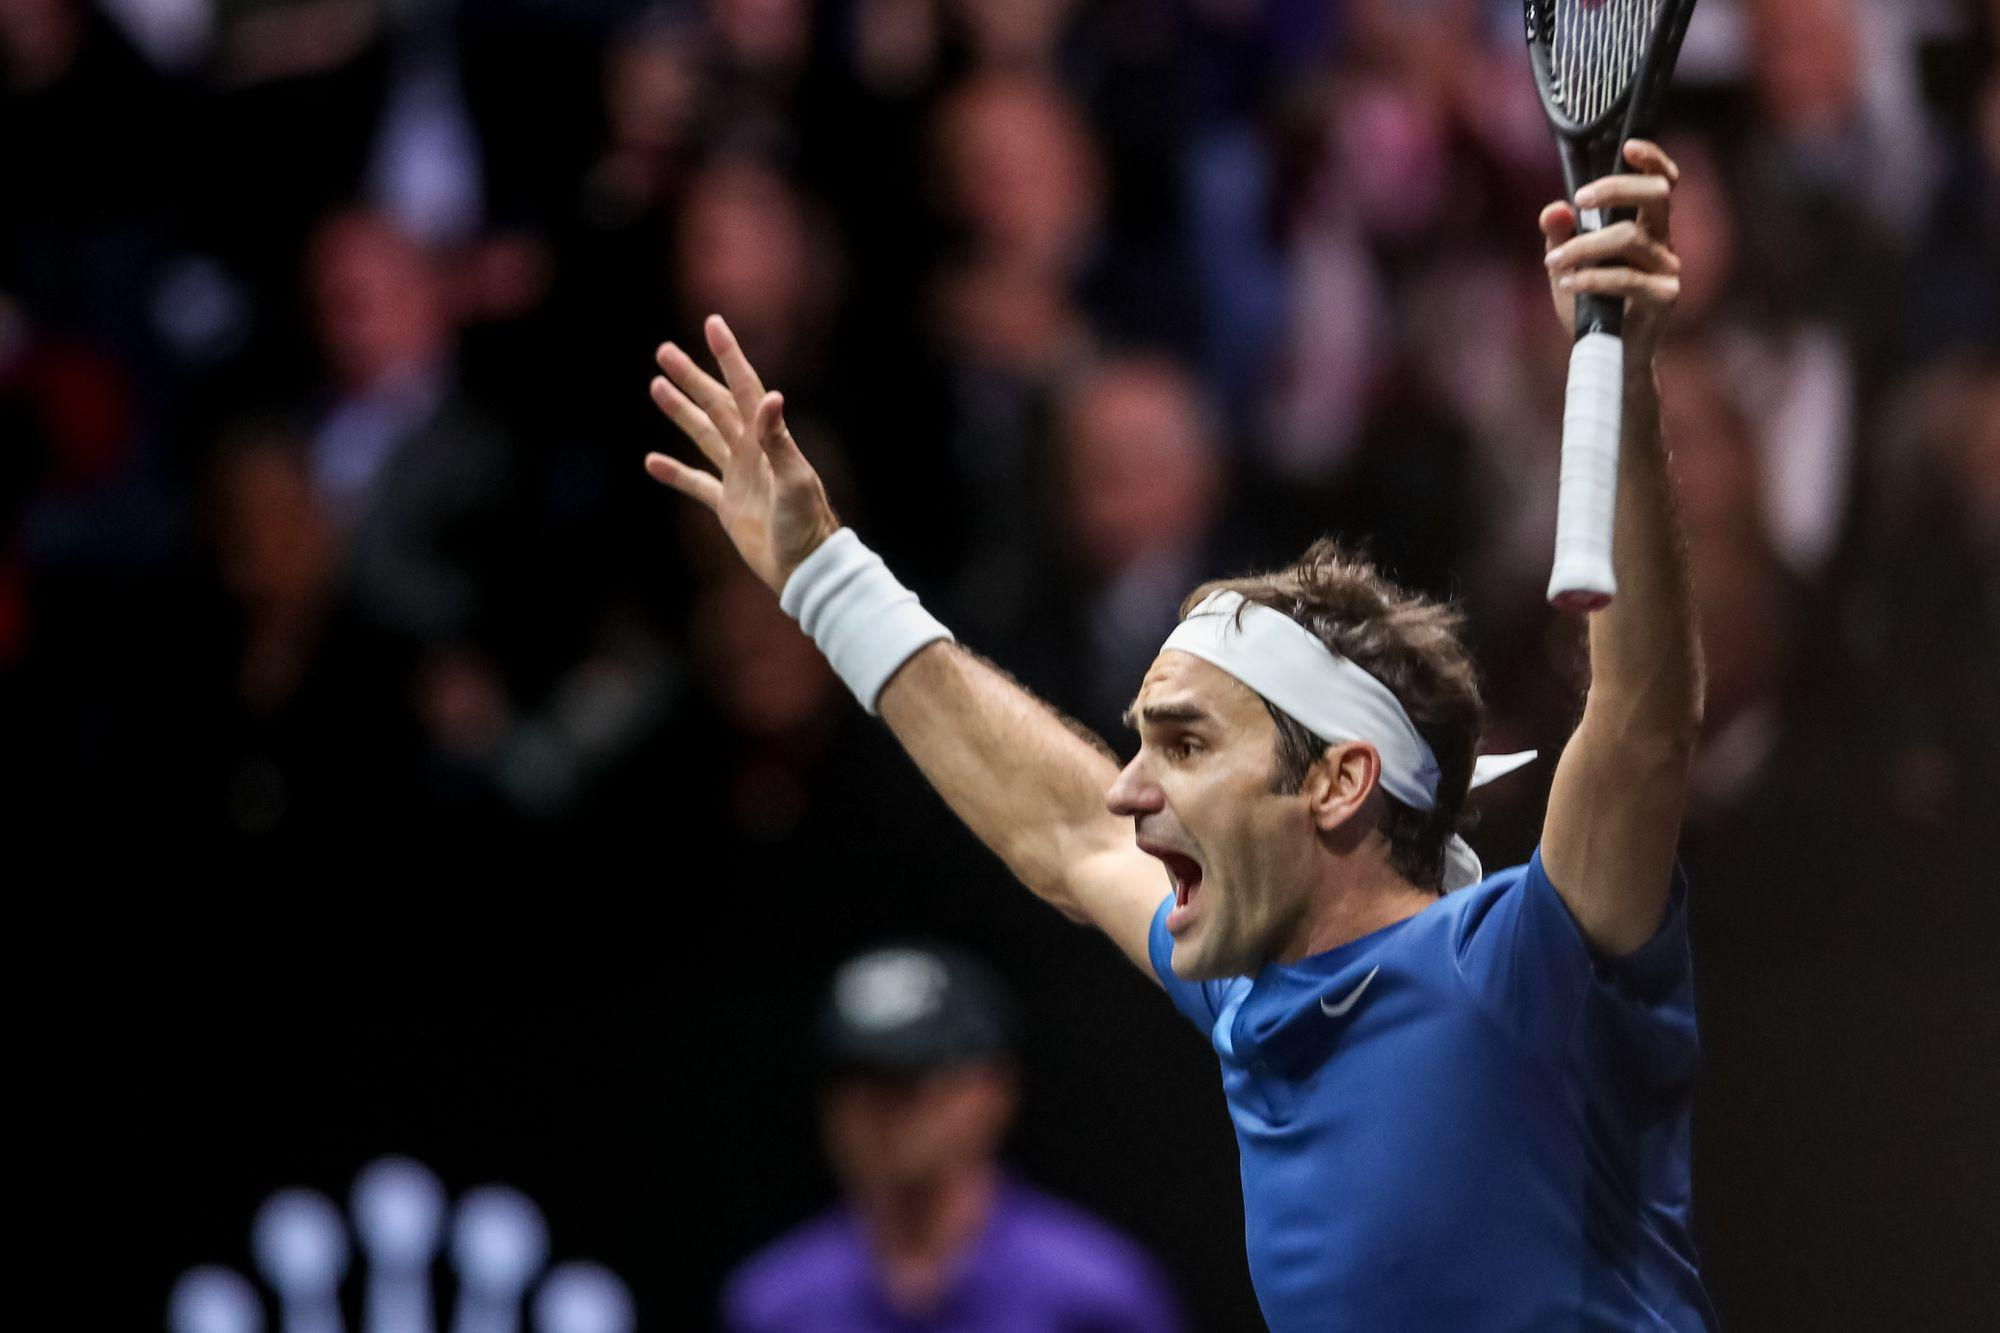 epa06224863 Switzerland's Roger Federer of the Team Europe celebrates after winning his match against Australia's Nick Kyrgios of the Team World during the Laver Cup tennis tournament in Prague, Czech Republic, 24 September 2017.  EPA-EFE/MARTIN DIVISEK